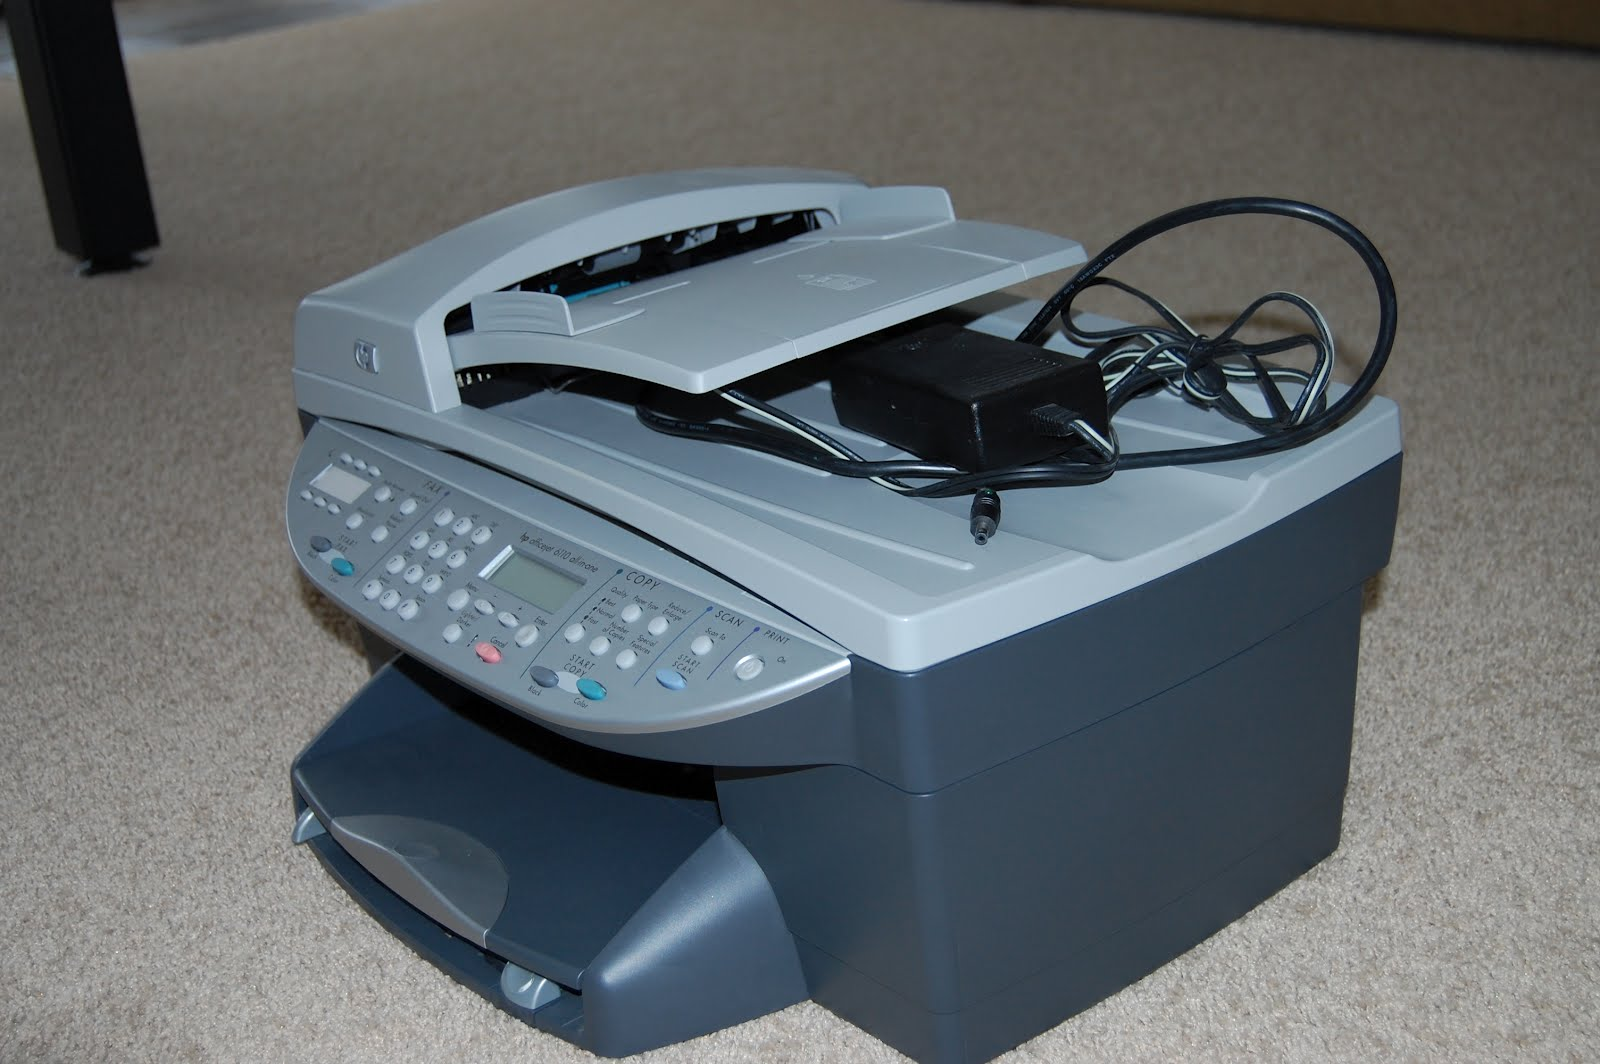 hp officejet 6110 all in one drivers for mac rh apsa2015 org Ciss for HP Officejet 6110 HP Photosmart All in One